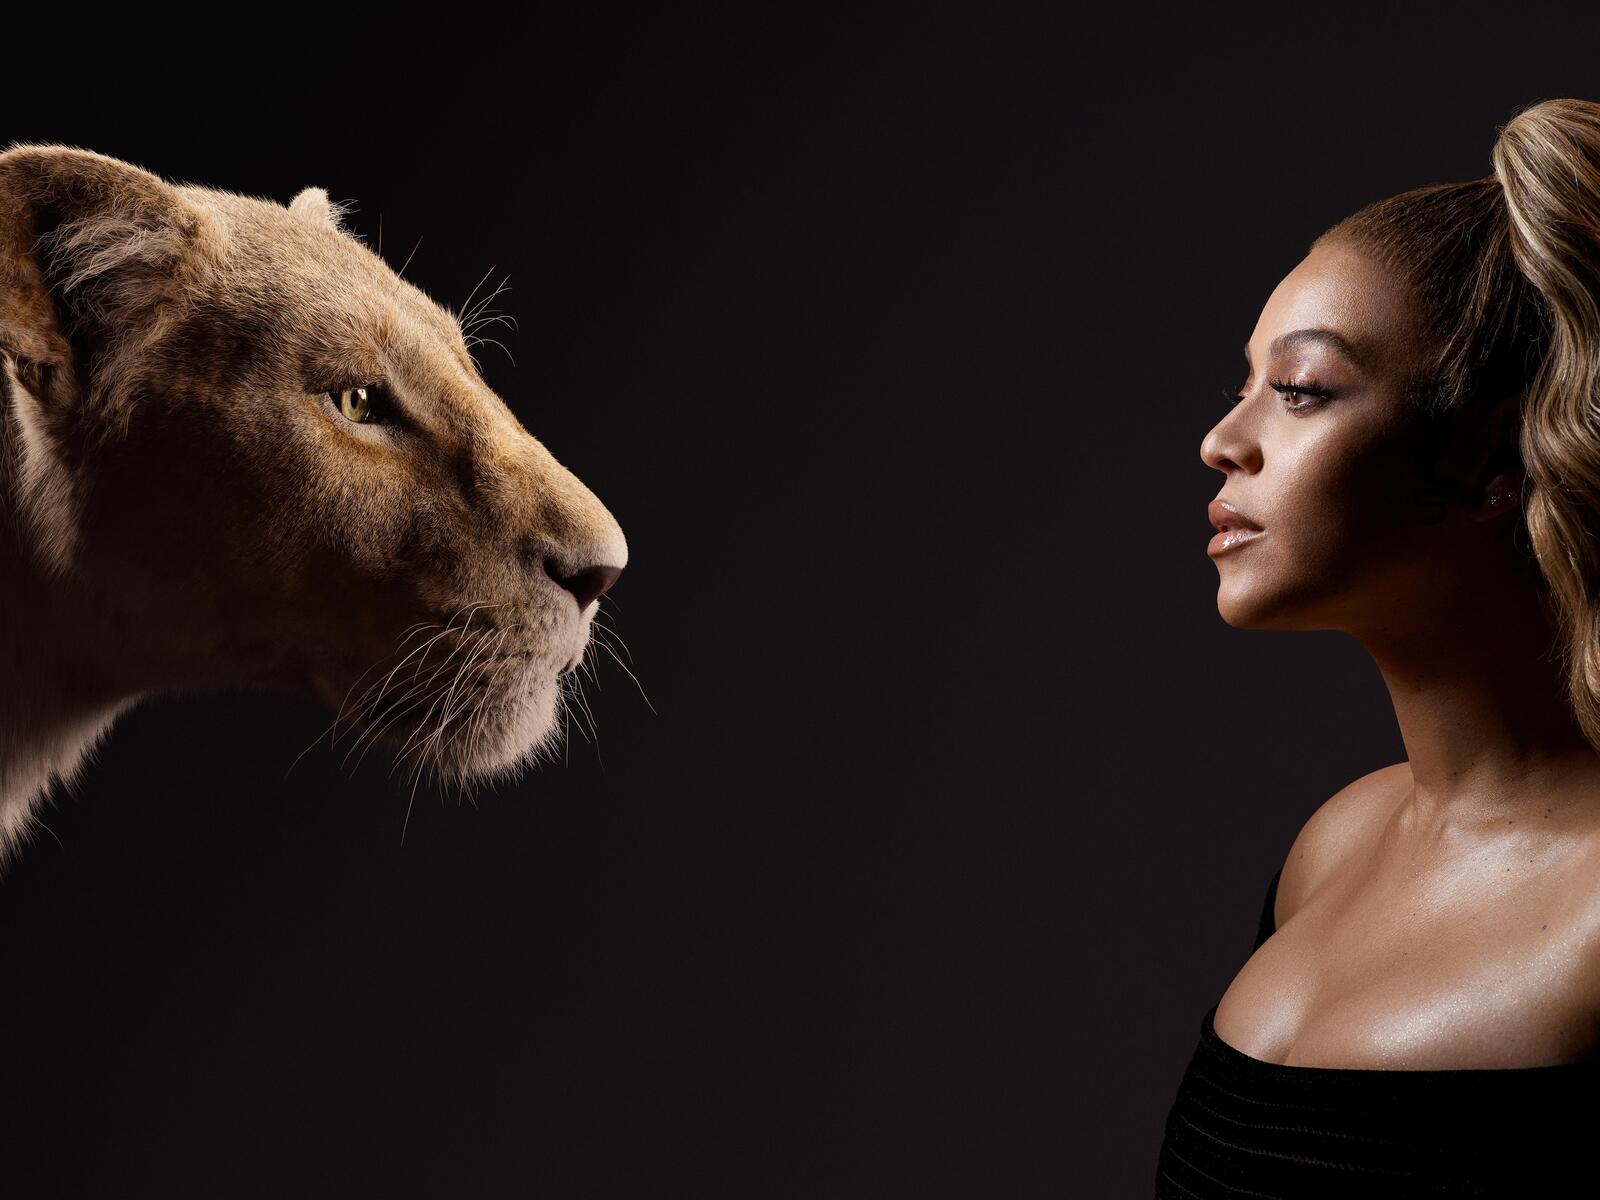 beyonce-as-nala-the-lion-king-2019-5k-32.jpg